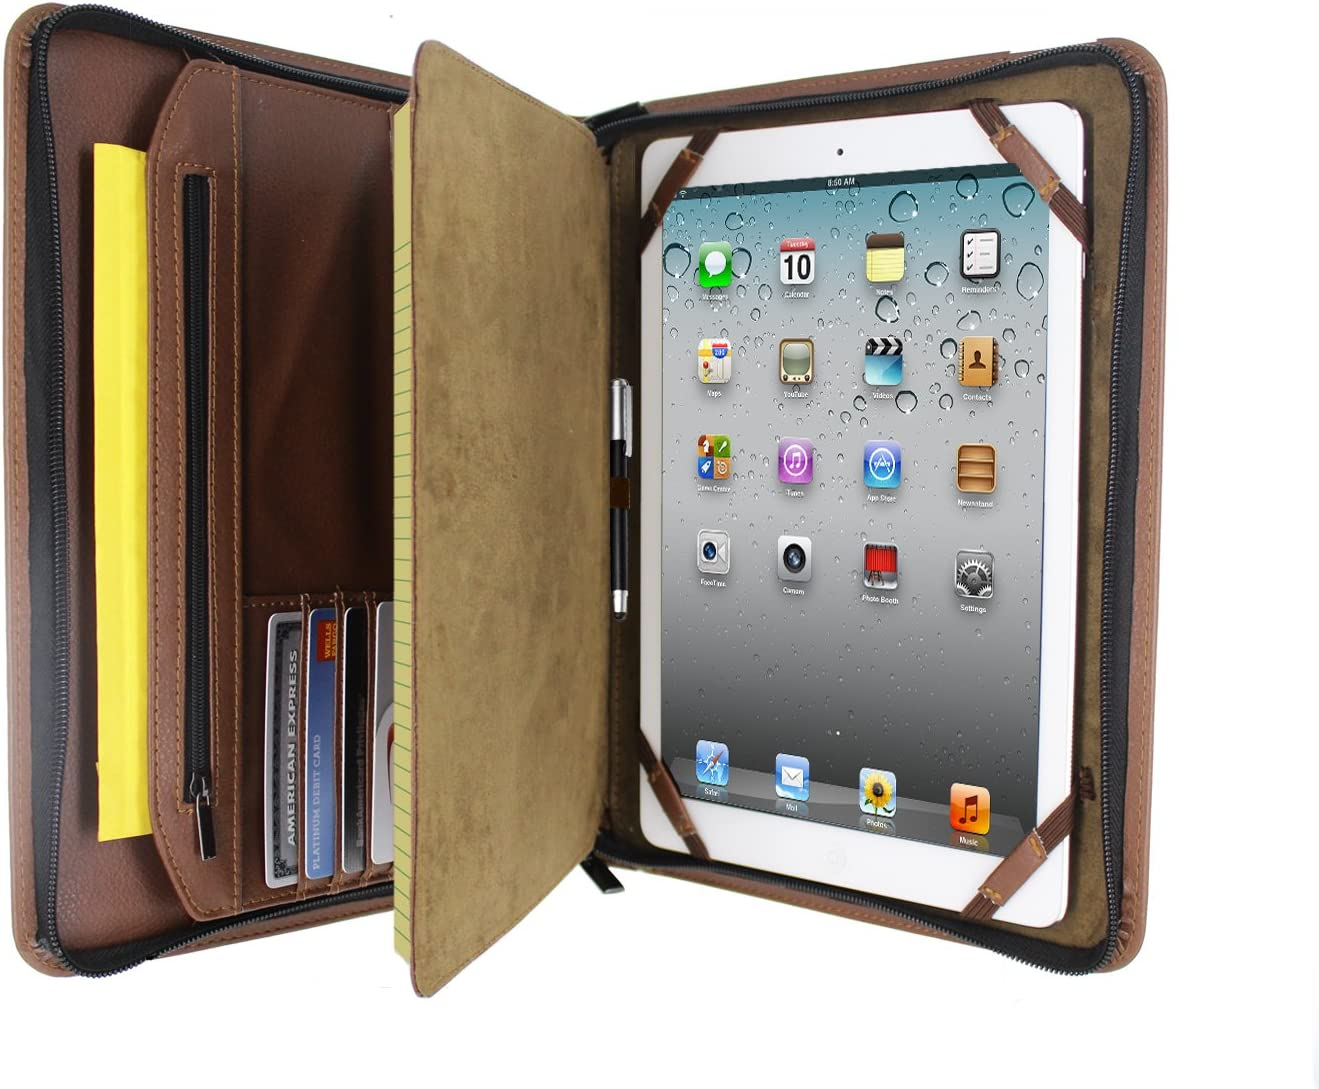 KHOMO Brown Executive PadFolio Case with Notepad Holder and Pockets for iPad 2,3,4, iPad Air, iPad Air 2 and iPad Pro 9.7 inch